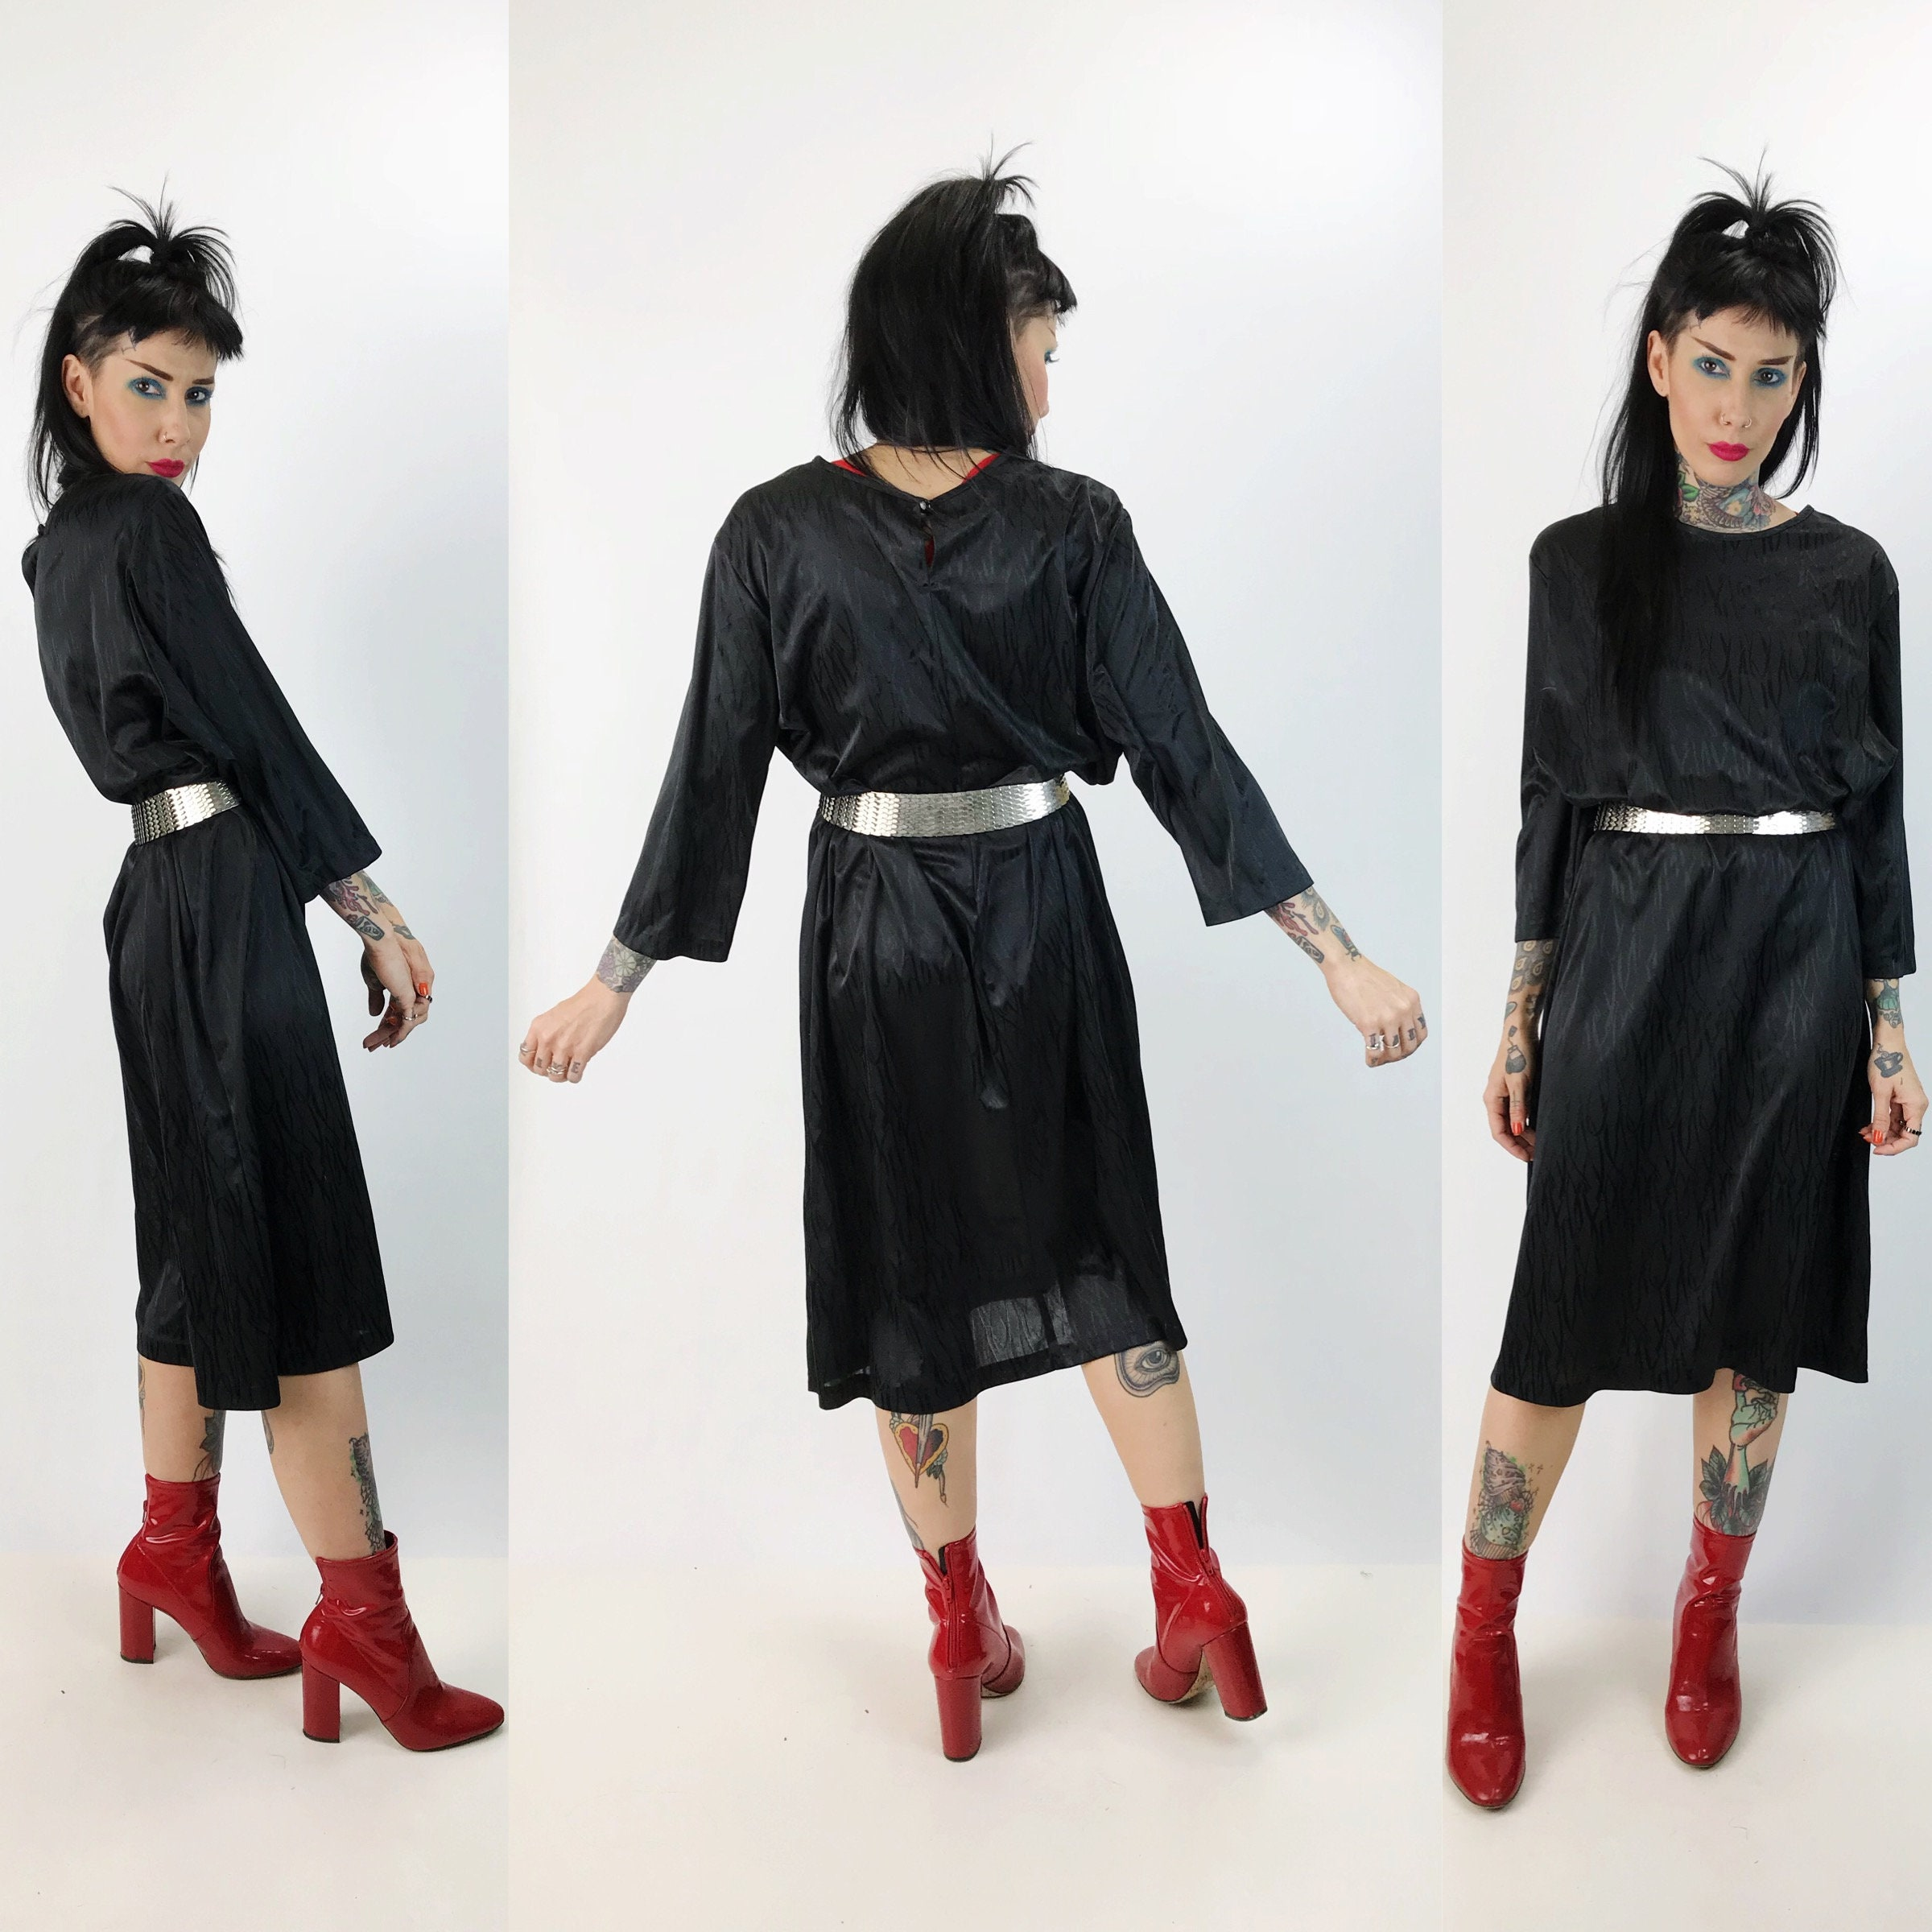 77cd4f9b644d 80 s Black Long Sleeve Midi Party Dress Large - Eighties Black Loose  Fitting Dress Embossed Allover Print Cocktail Midi Sack Party Dress.  gallery photo ...